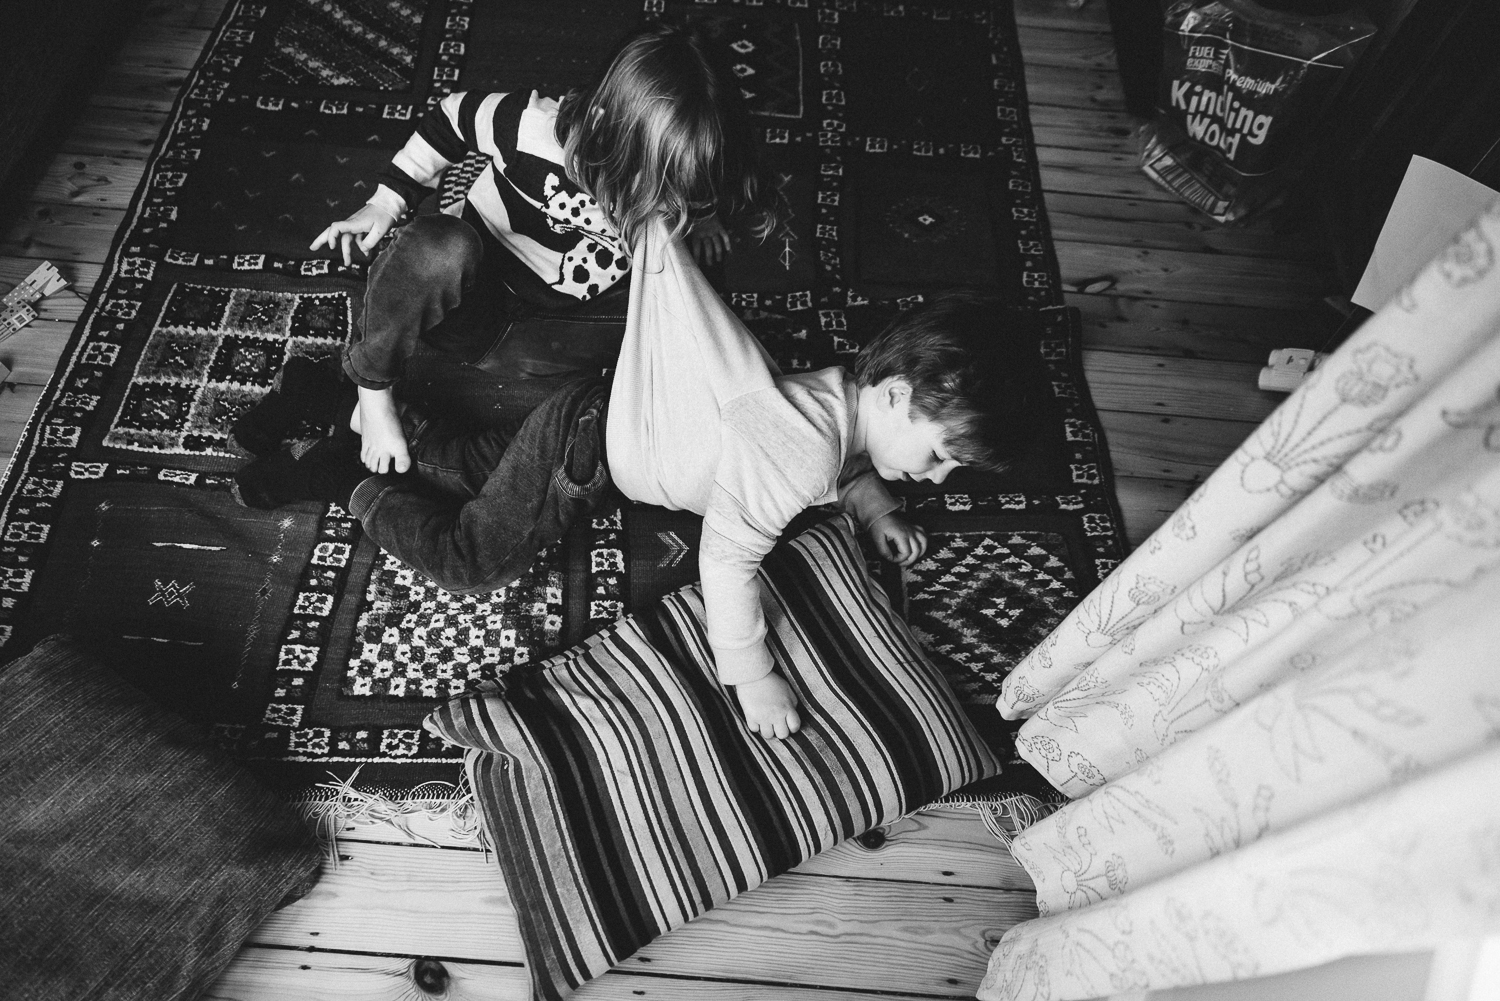 Copy of two siblings having a playfight in their home -Diana Hagues Phot